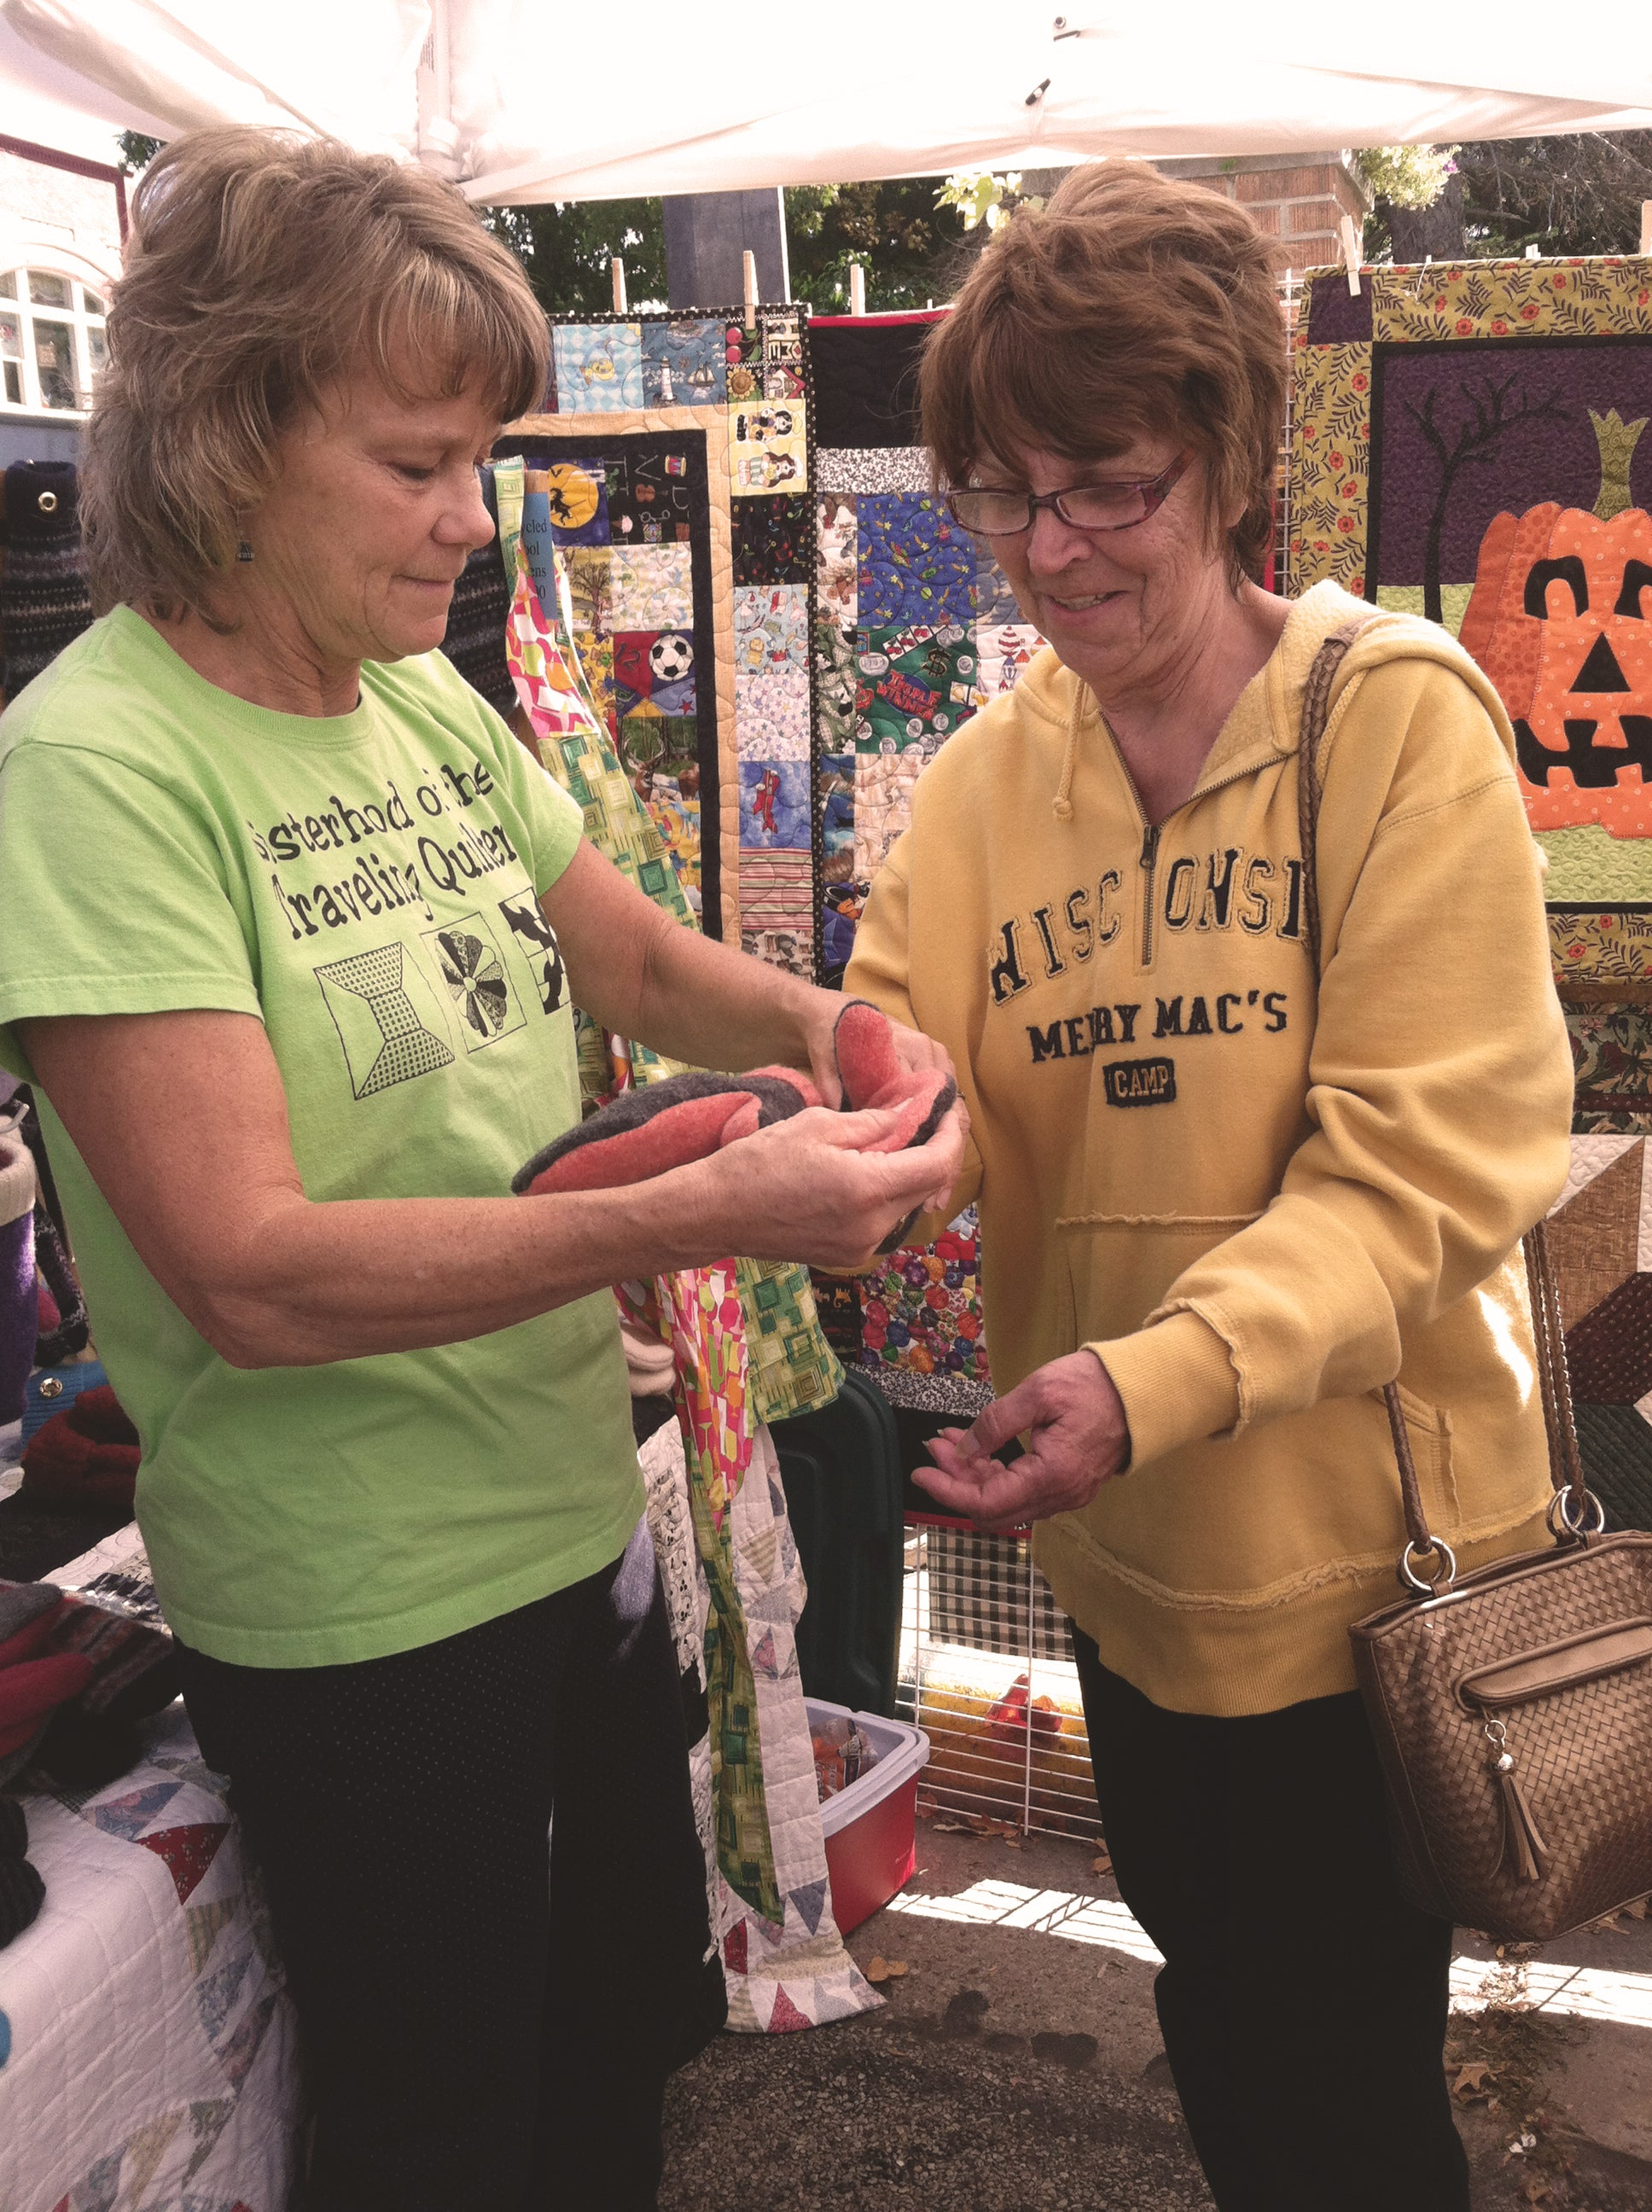 Deb Selling MIttens at a Craft Fair